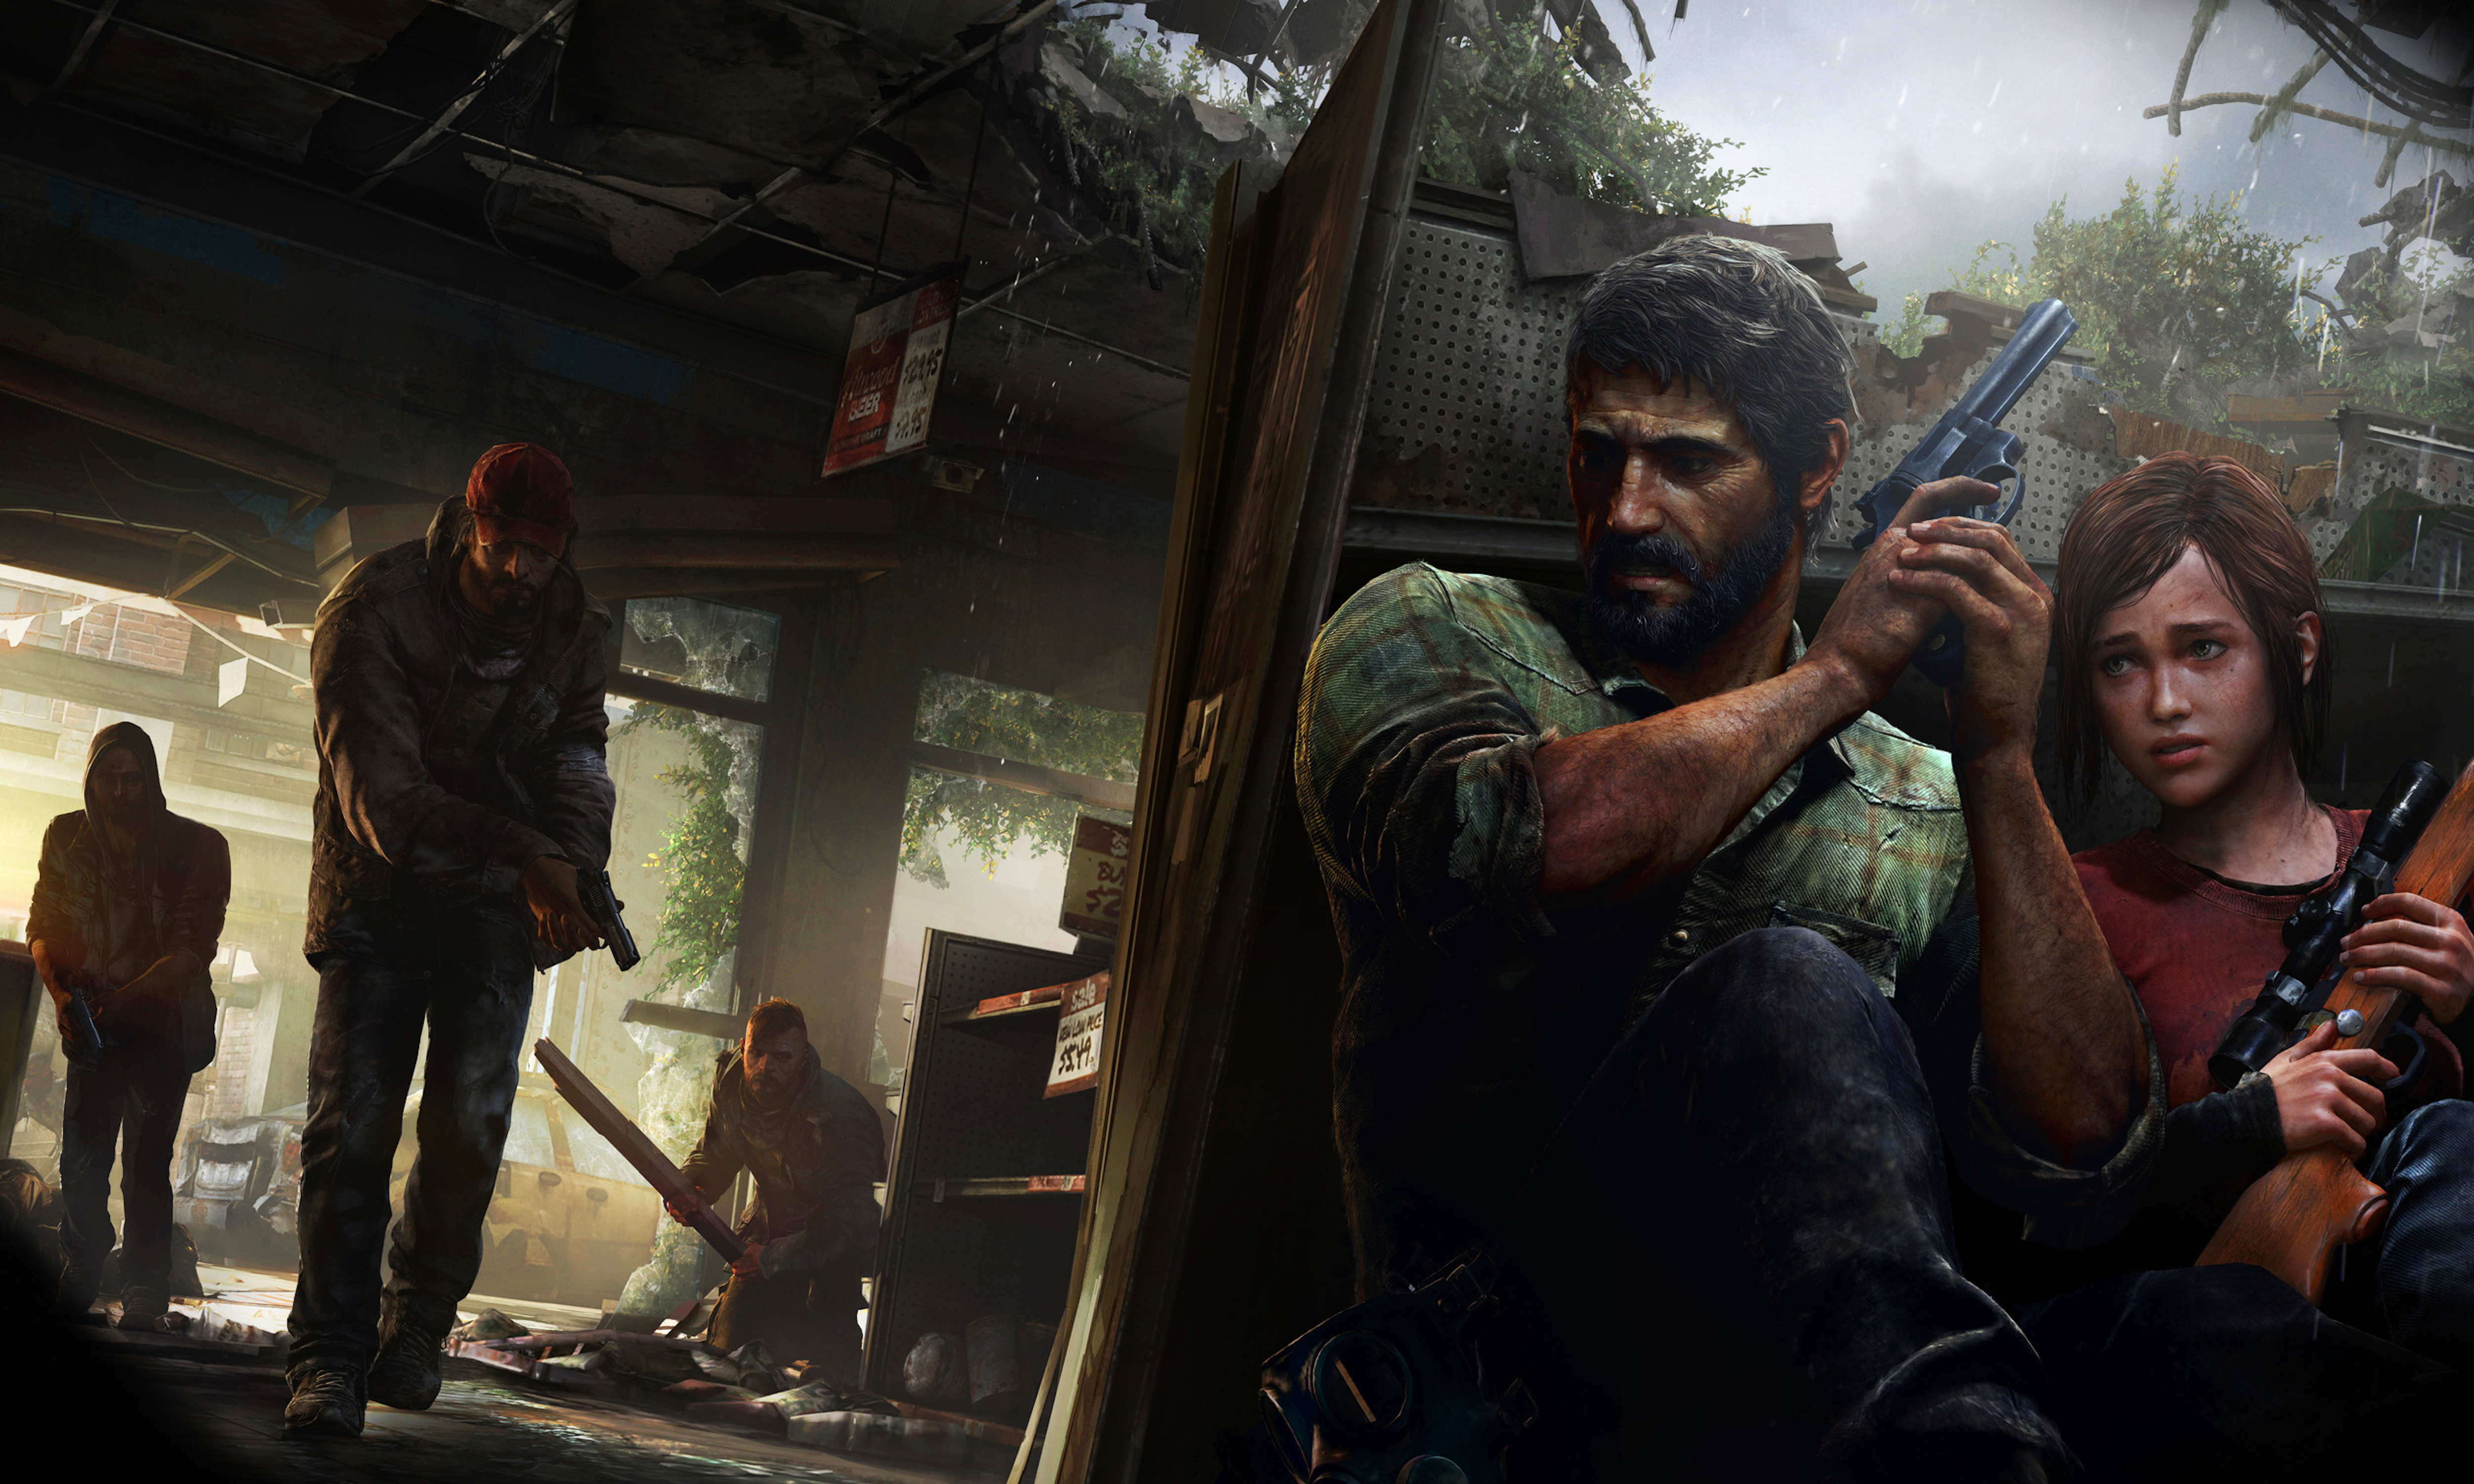 http://vignette4.wikia.nocookie.net/thelastofus/images/f/f3/Video_Game_The_Last_Of_Us_244621.jpg/revision/latest?cb=20121215114639